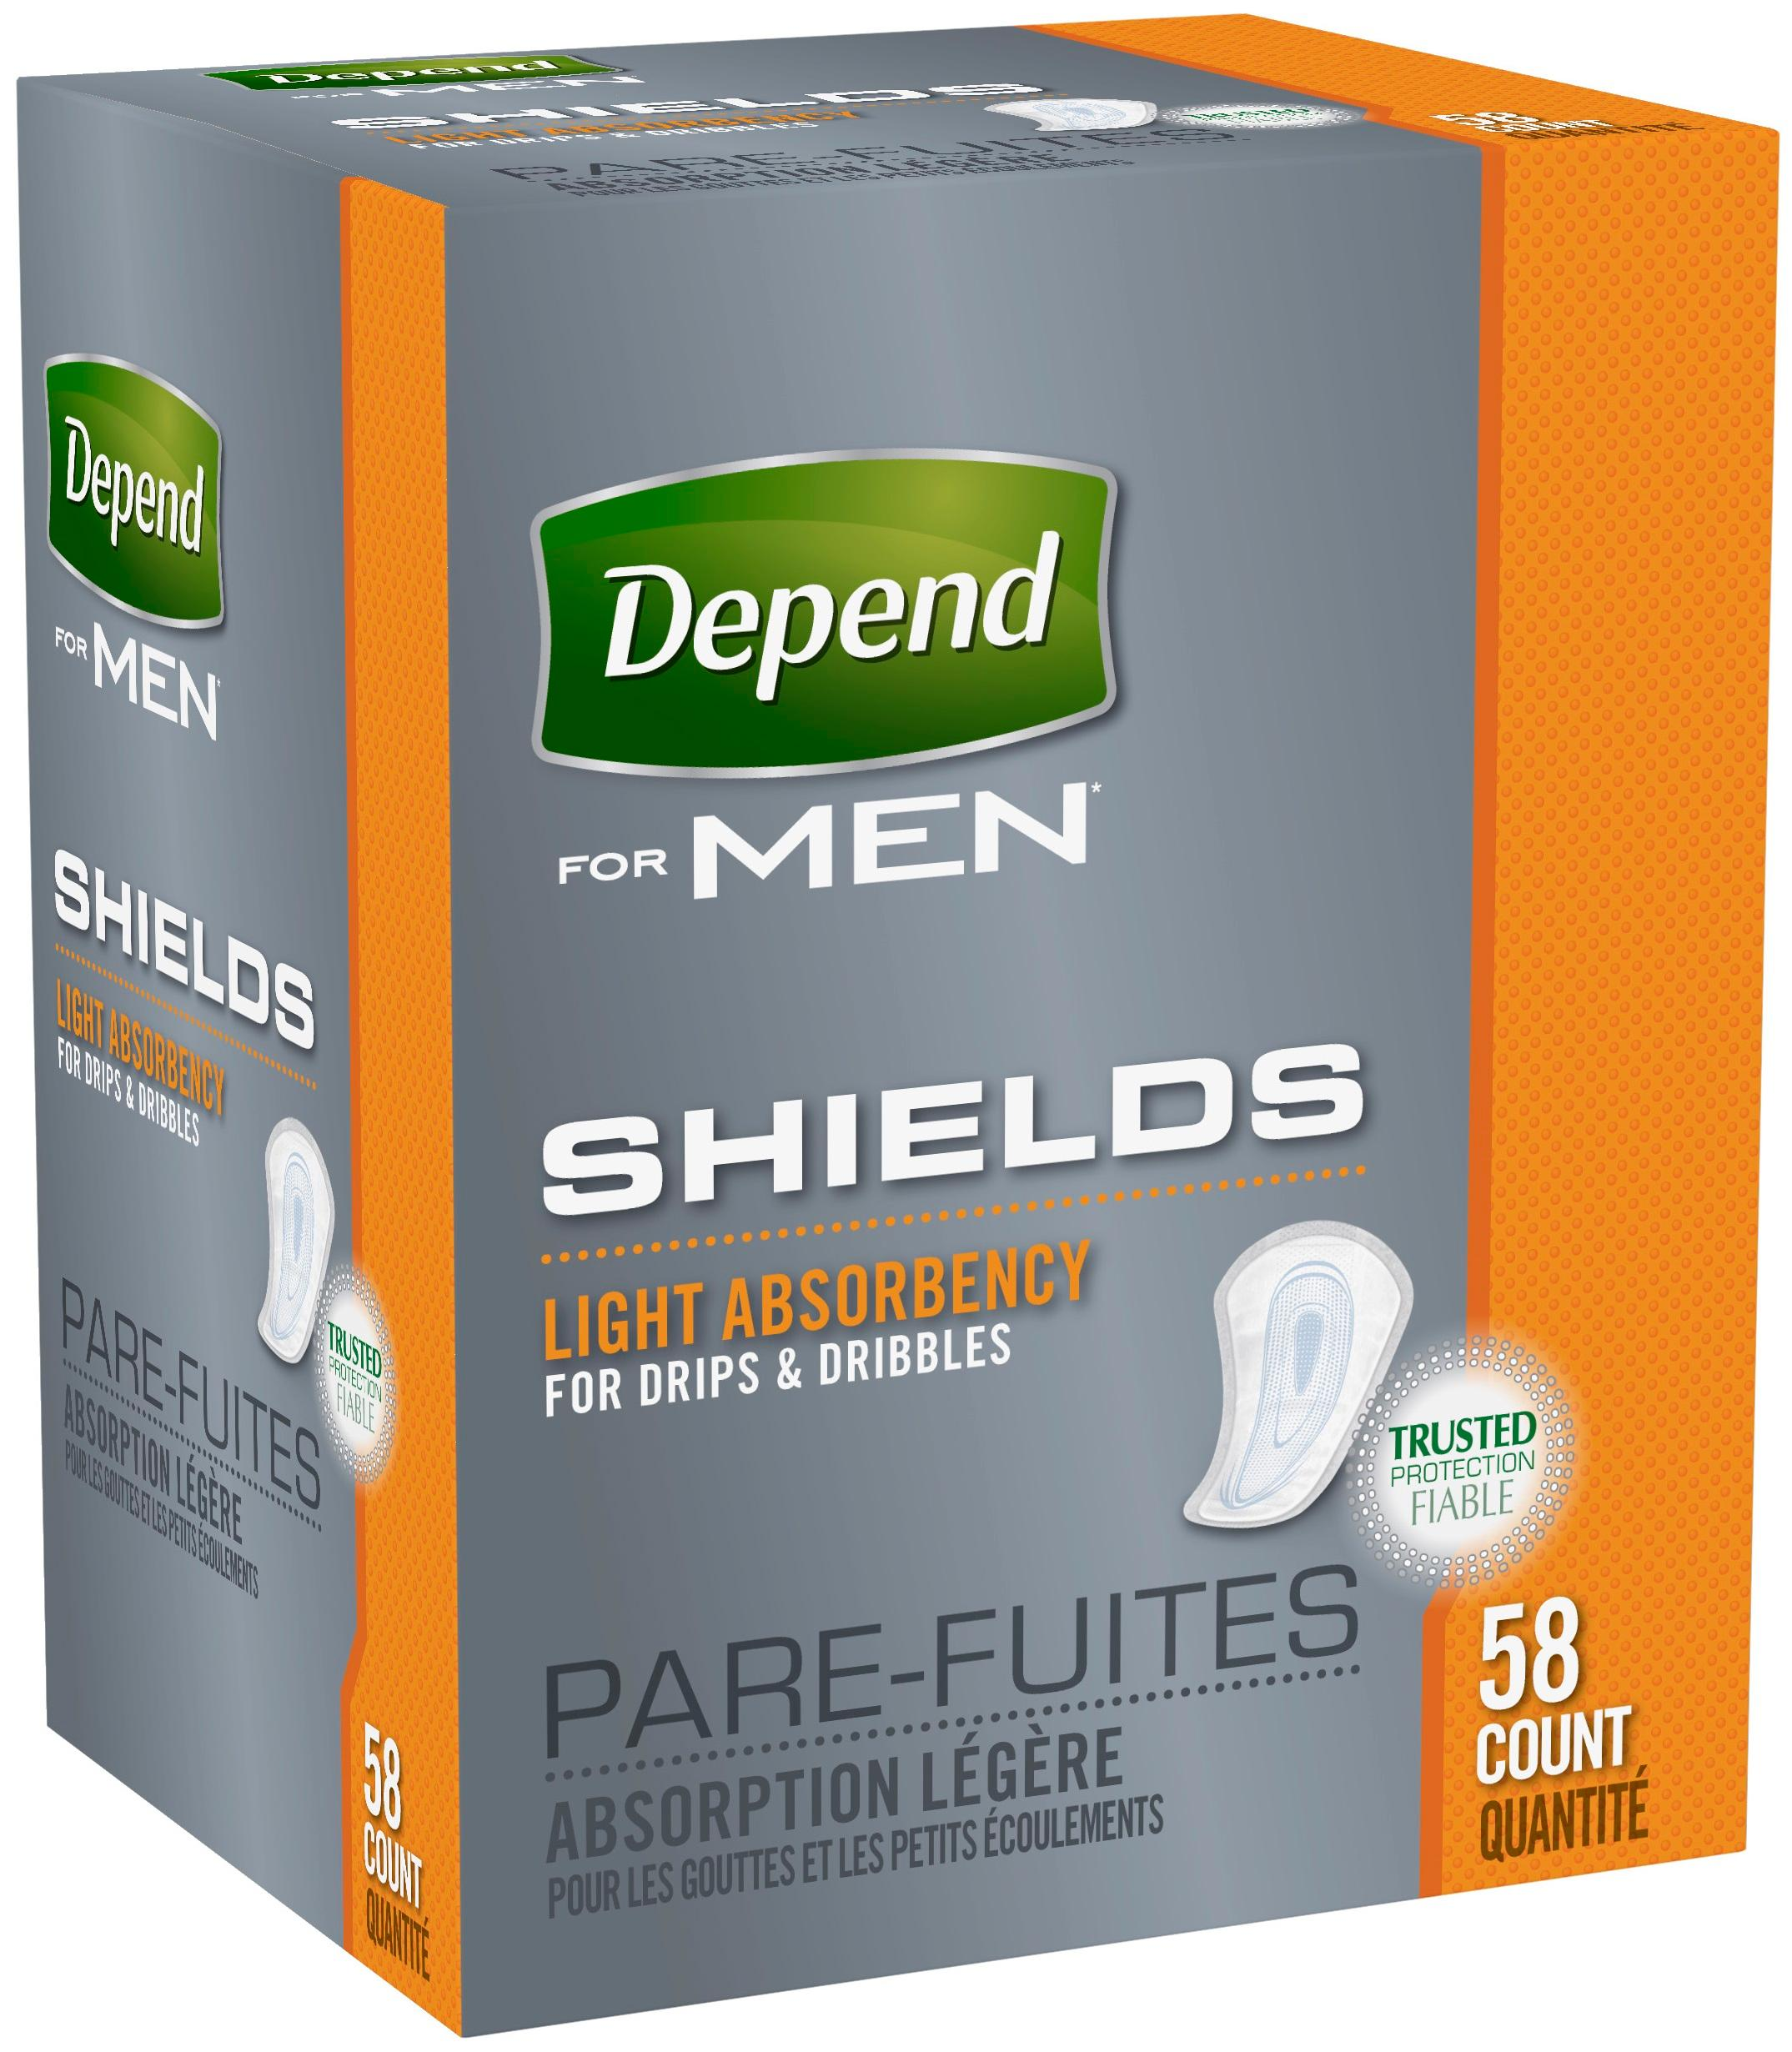 Depend Shields For Men 58 Count Amazon Ca Health